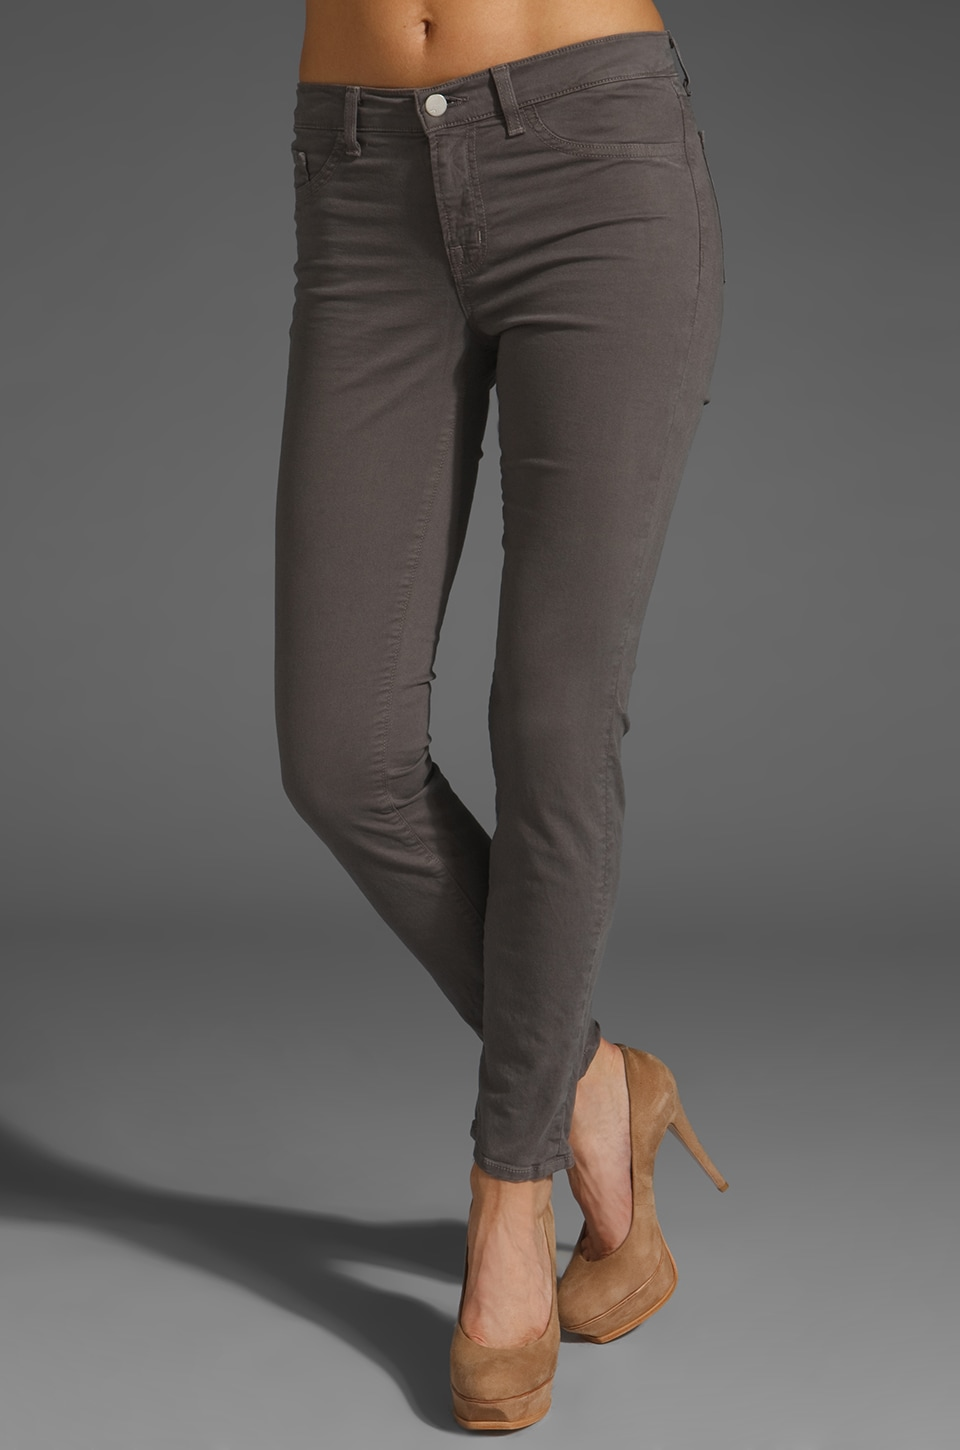 J Brand Twill Legging in Cafe